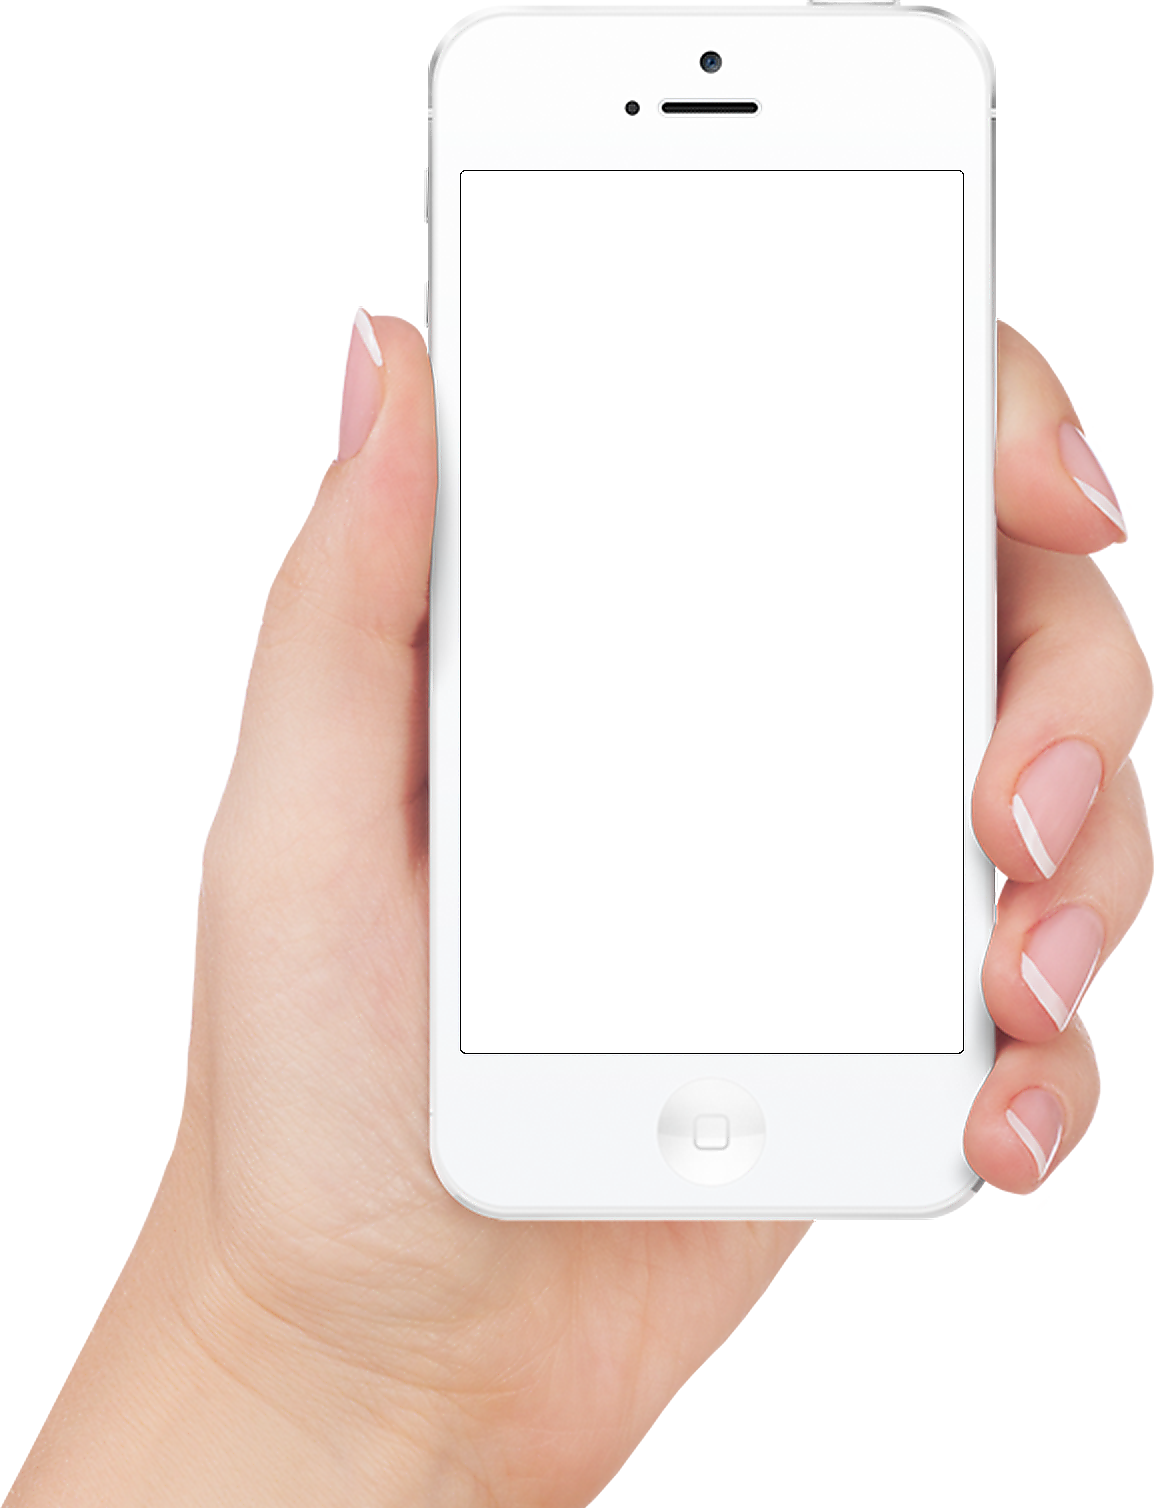 Apple iphone in hand transparent PNG image image with